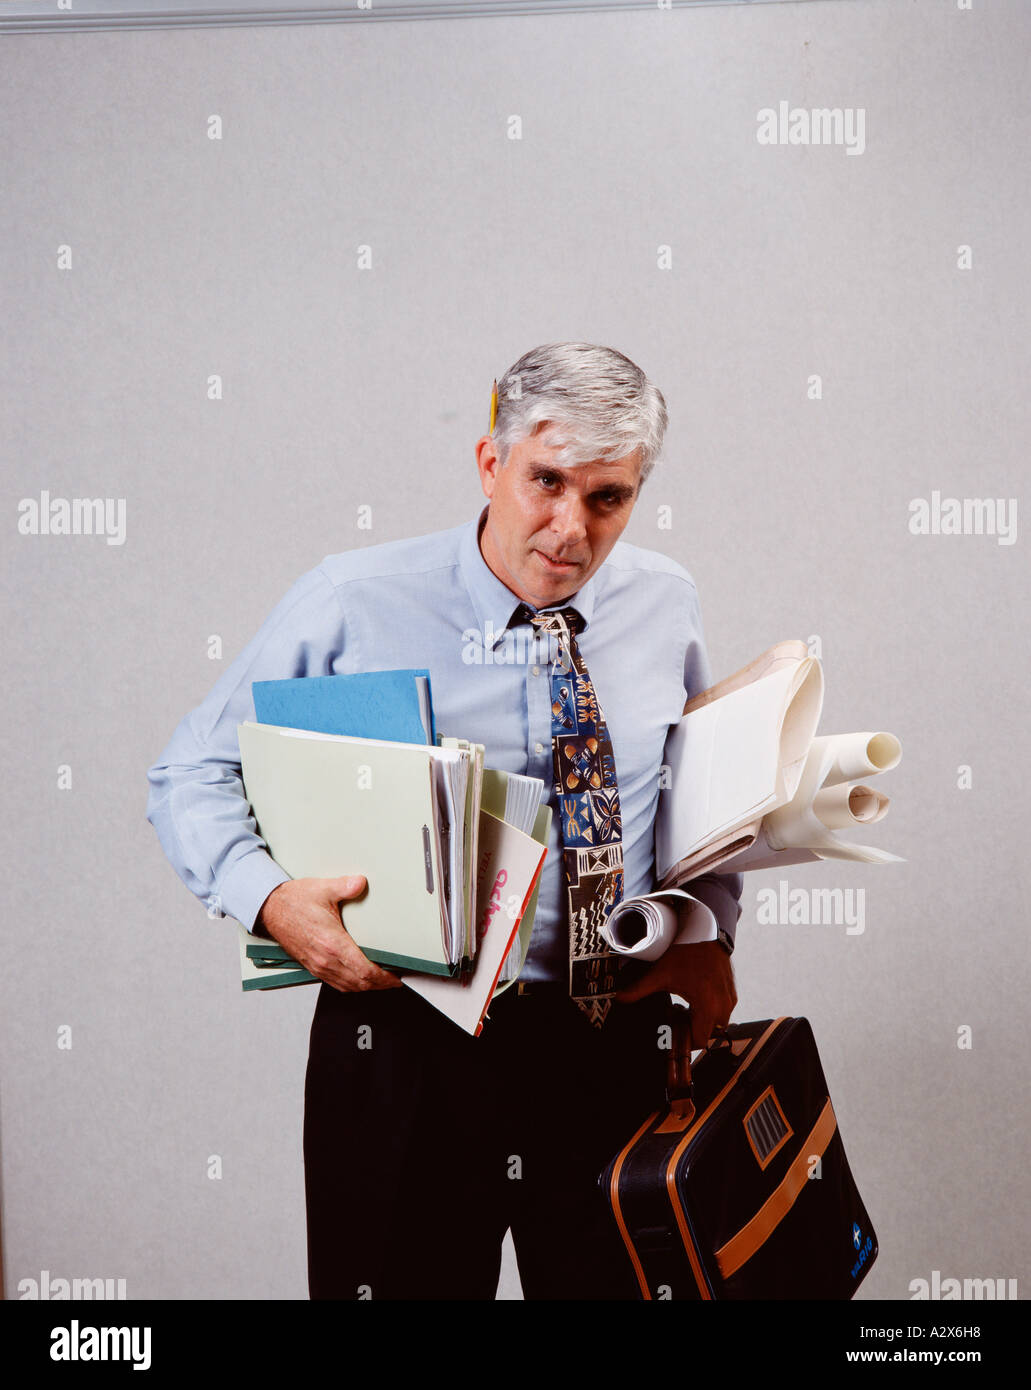 Middle aged man holding paperwork and looking stressed and overworked. - Stock Image